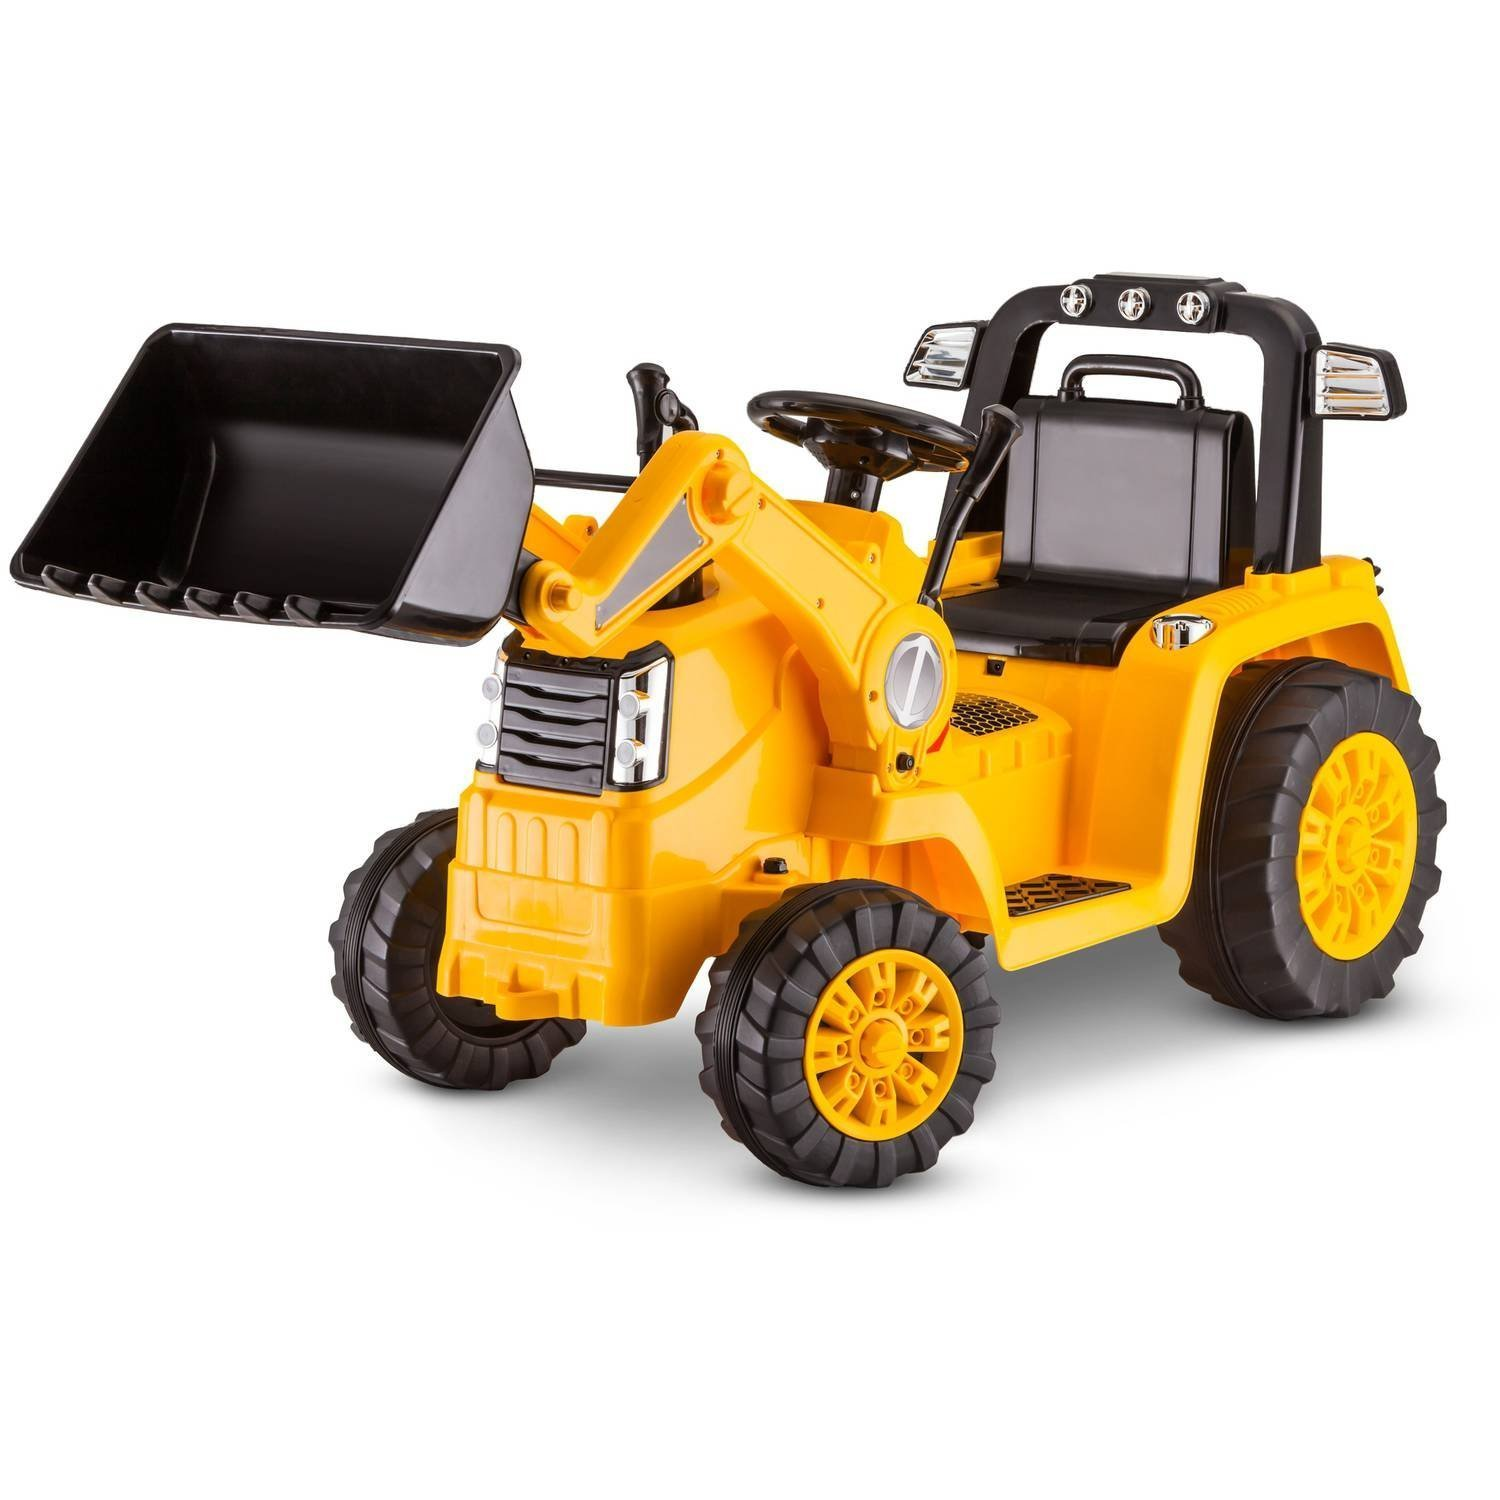 Best Construction Toys And Trucks For Kids : The top best ride on construction toys for kids in